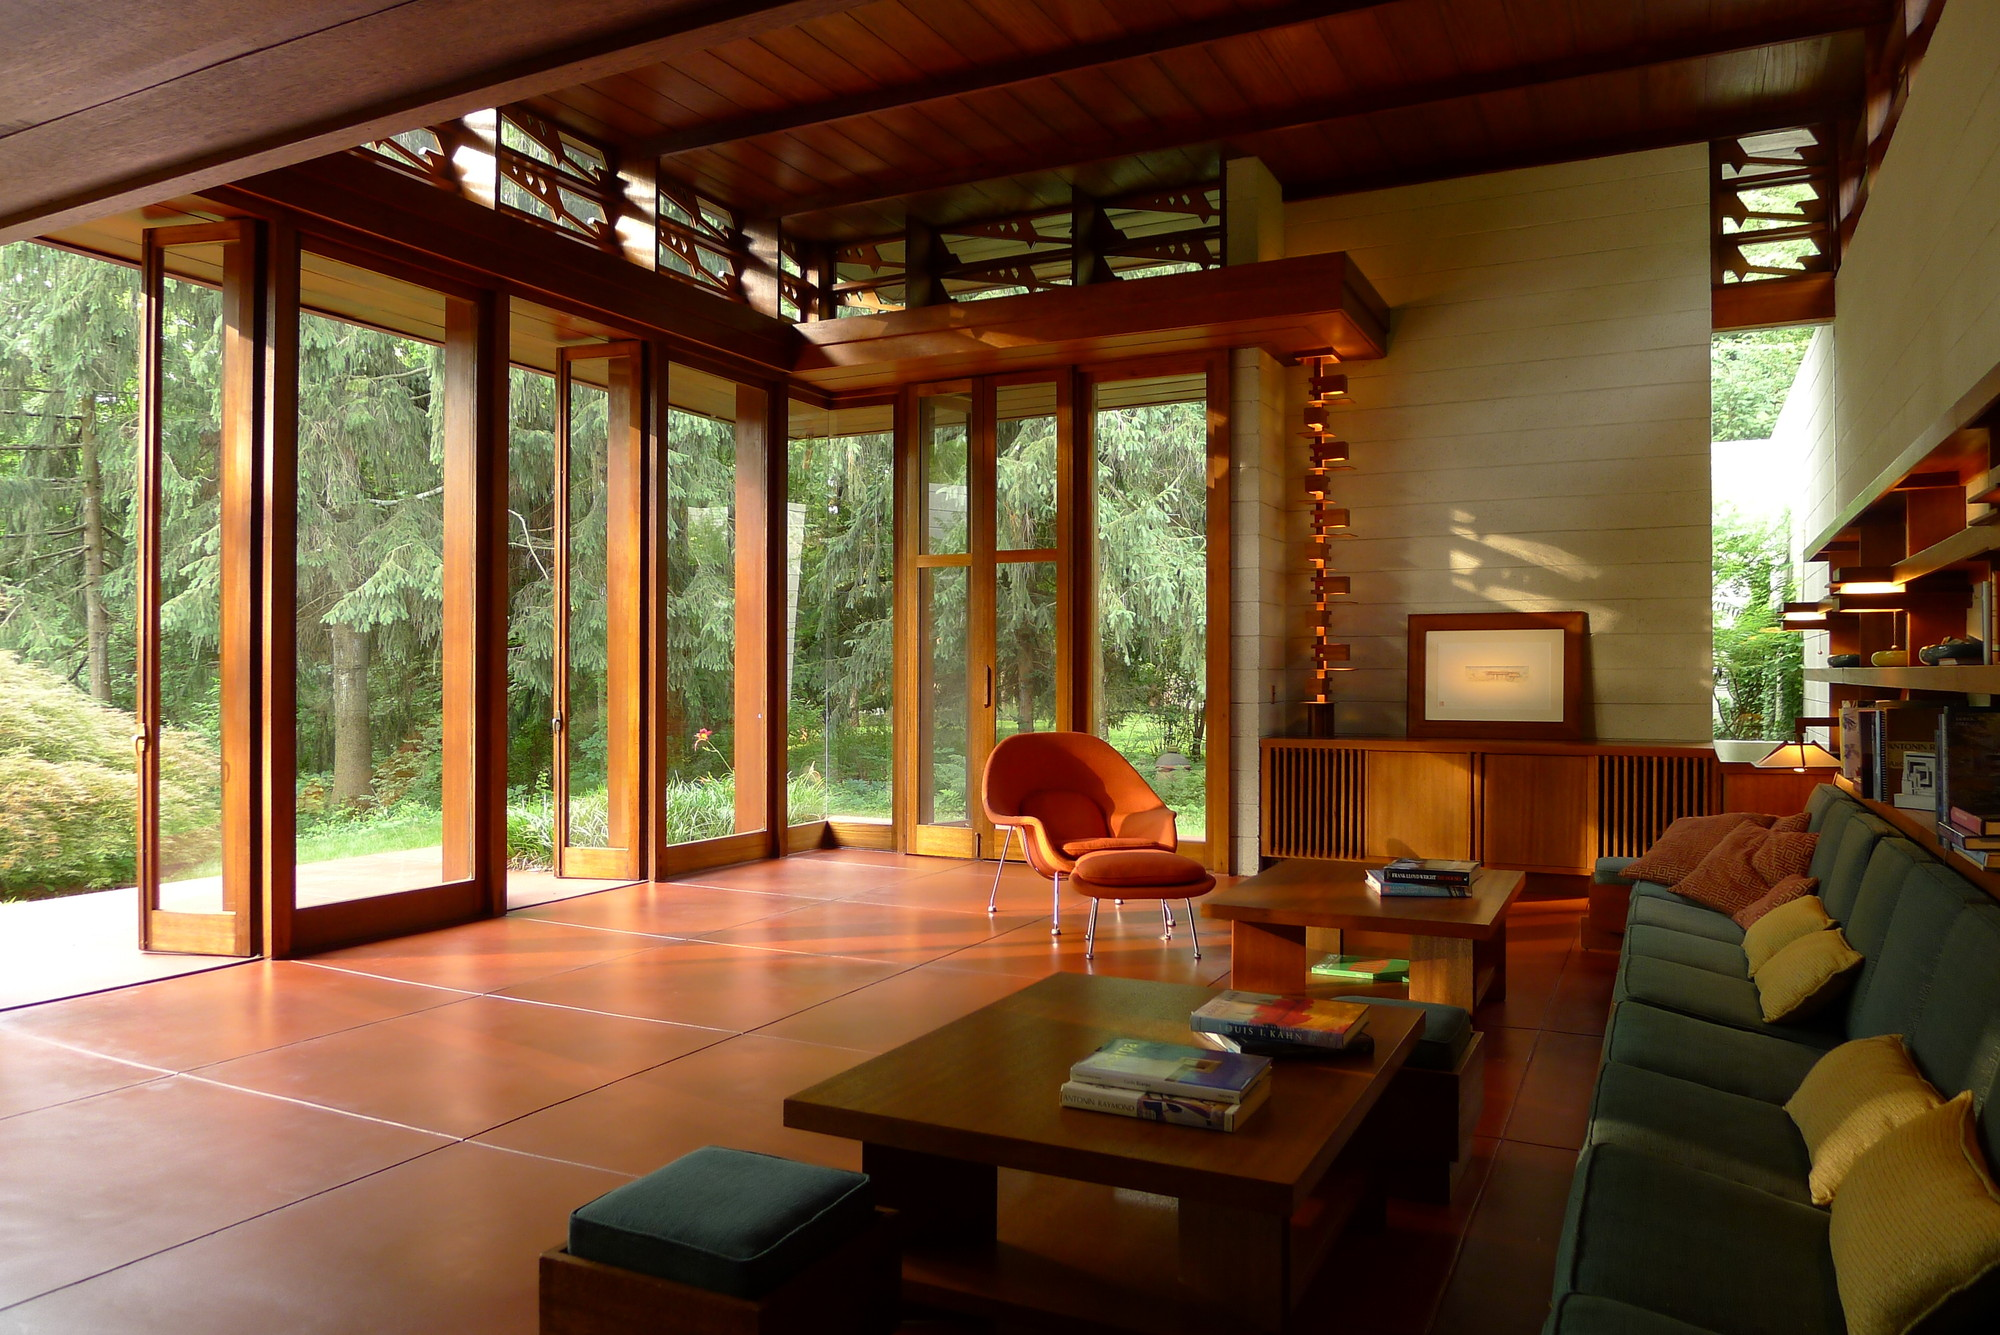 Frank lloyd wright house saved archdaily for Frank lloyd wright house design